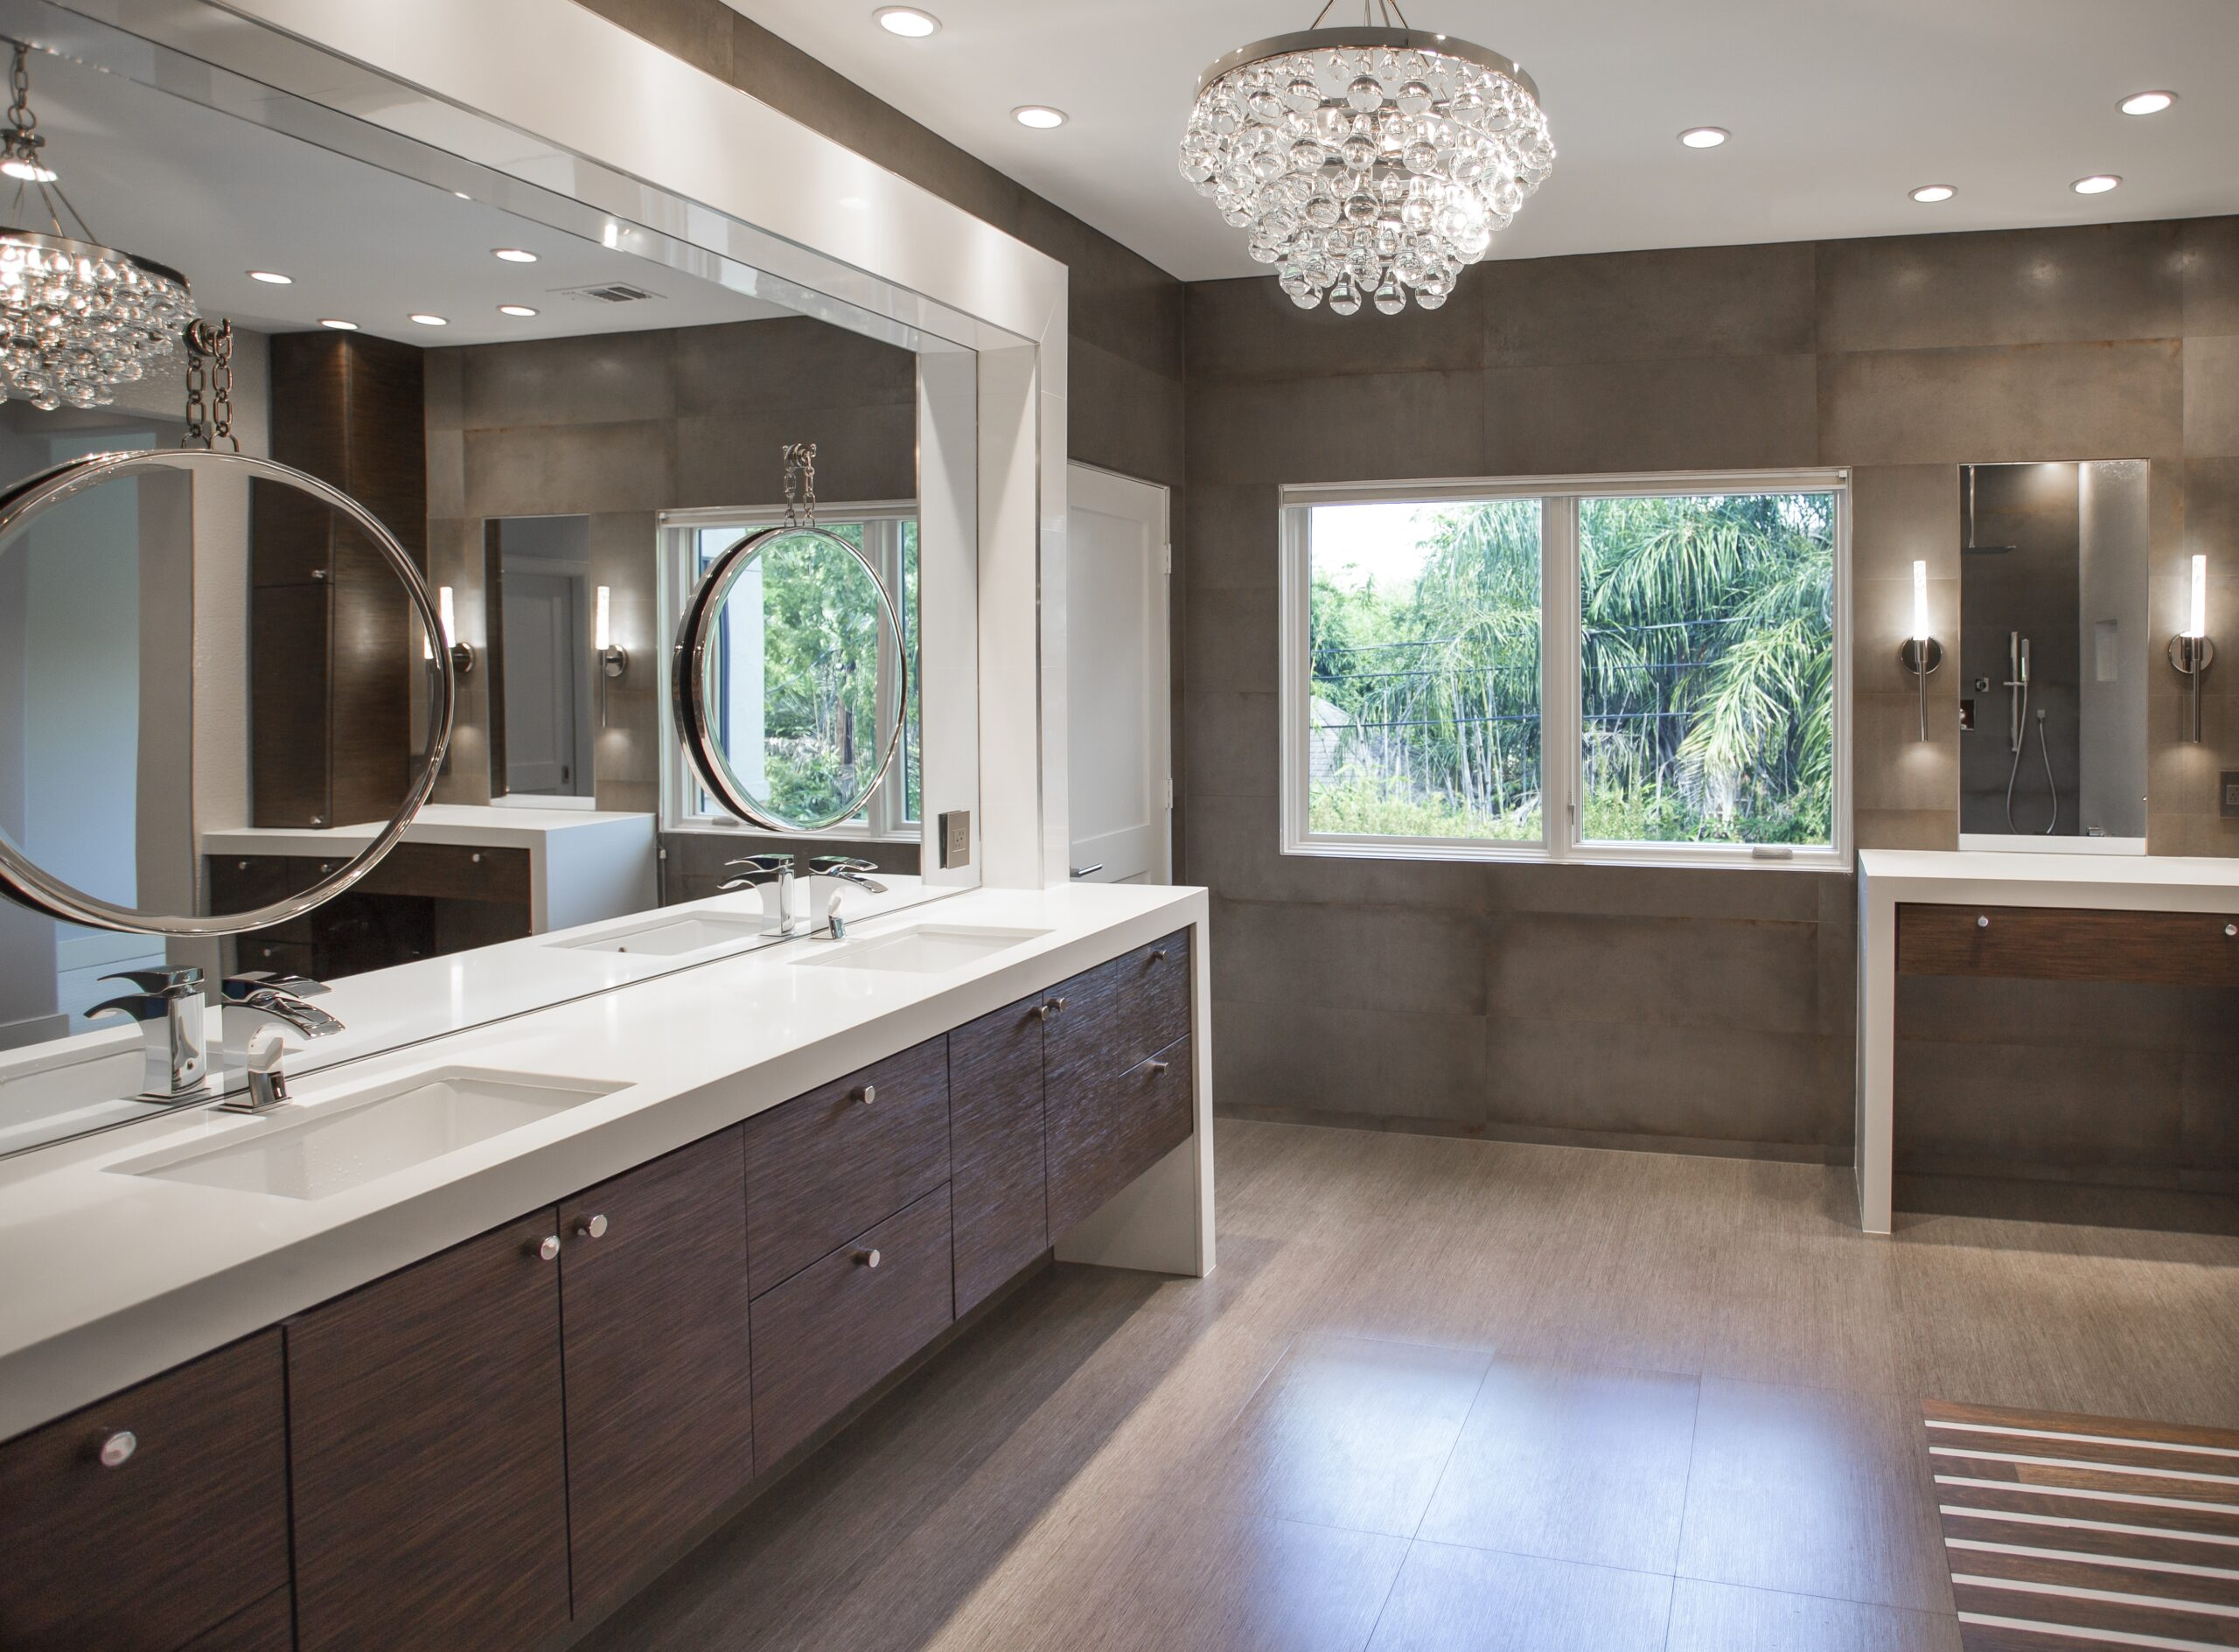 west university master bathroom houston texas 2015 - Bathroom Design Houston